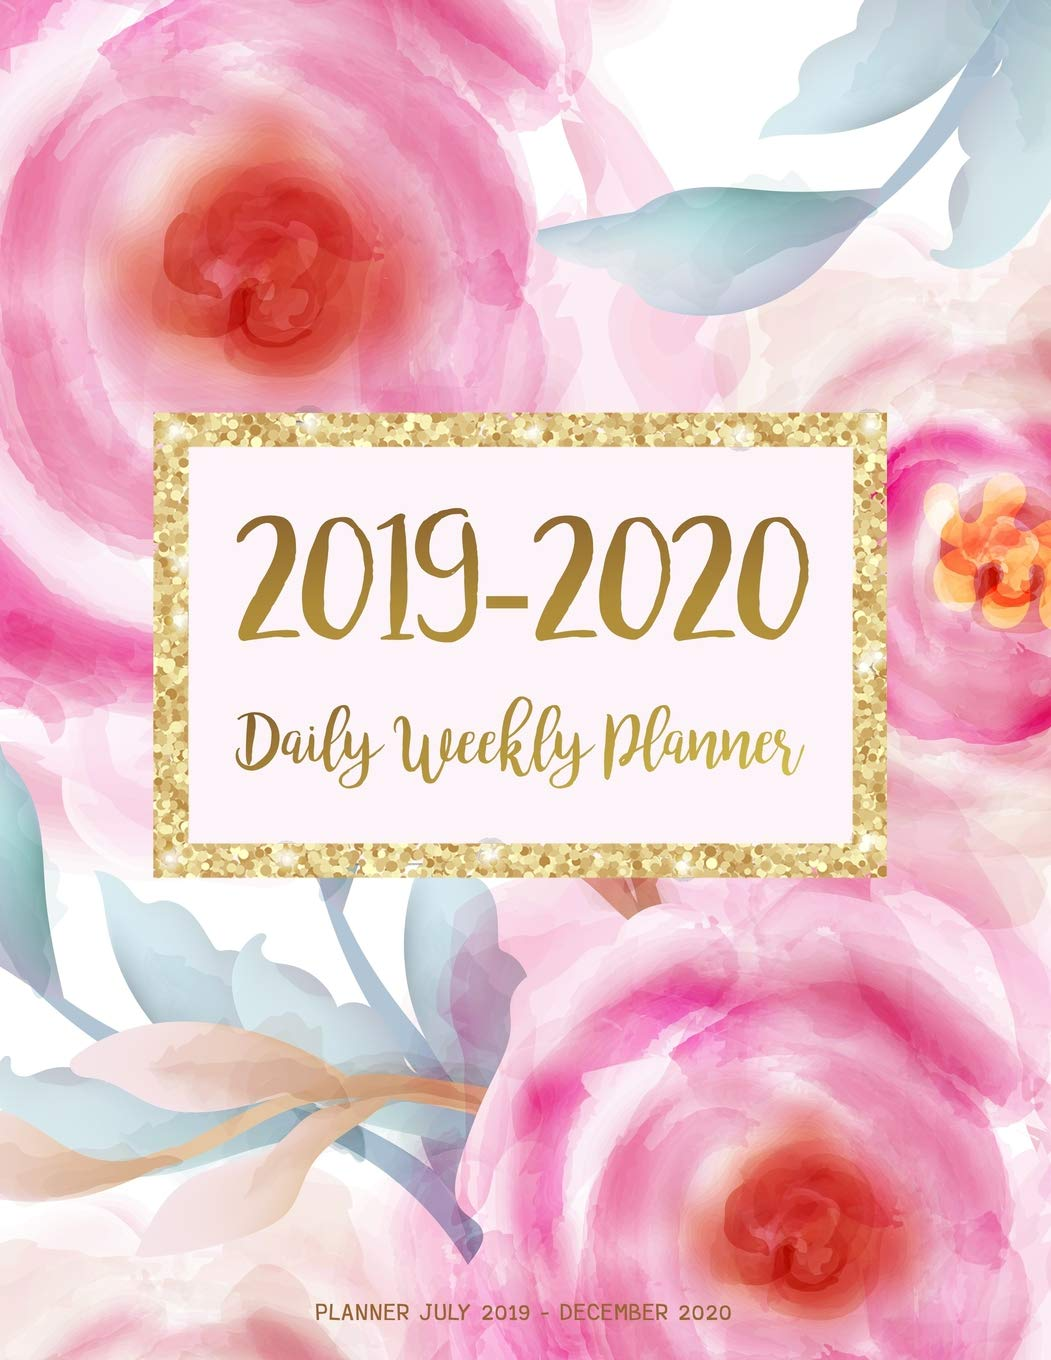 Planner July 2019 - December 2020: 2019-2020 2 Year Daily Weekly ...